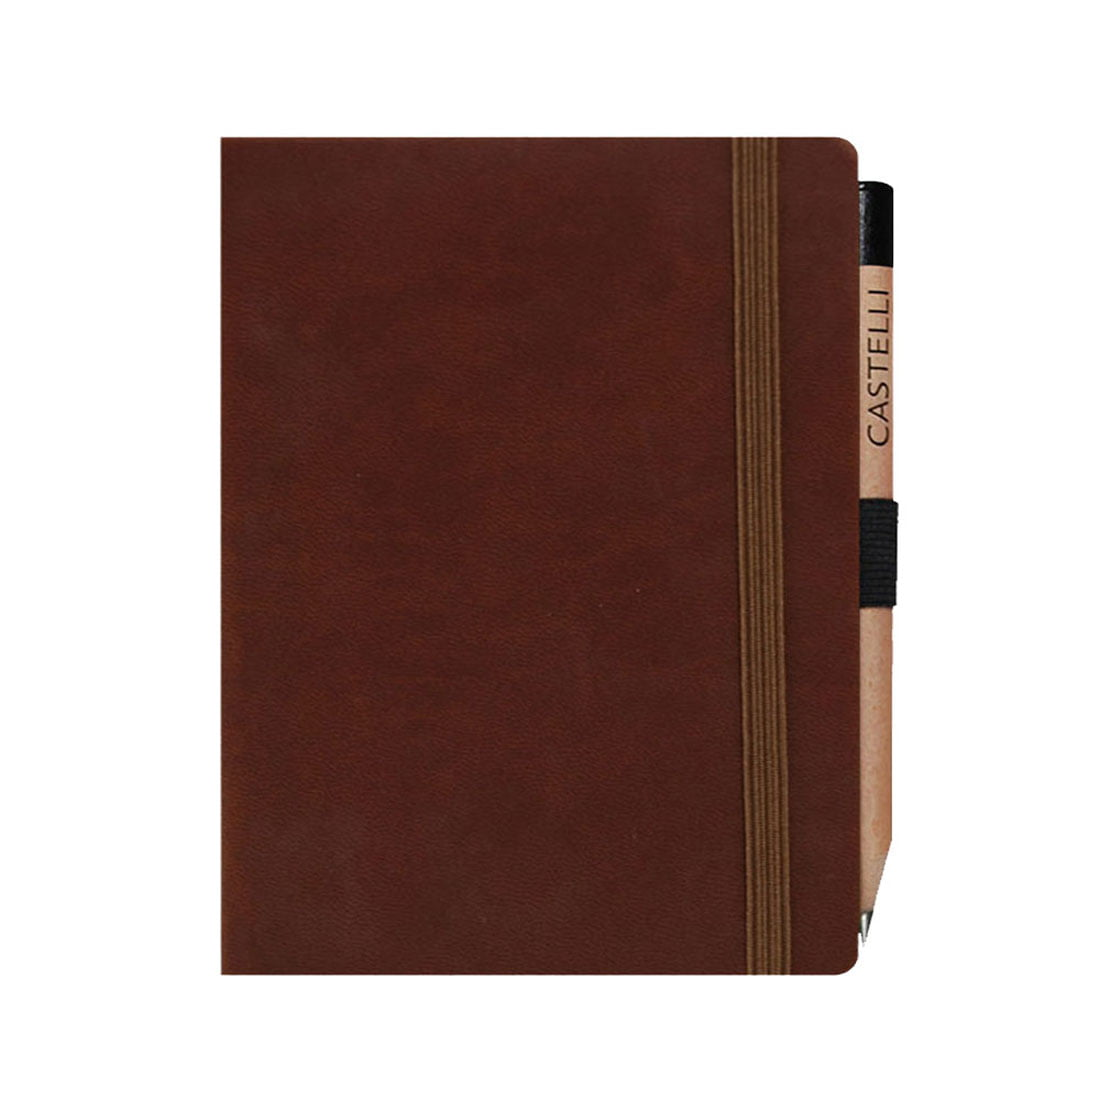 Brown large journal with pen loop and pencil, rounded corners and ribbon maker.